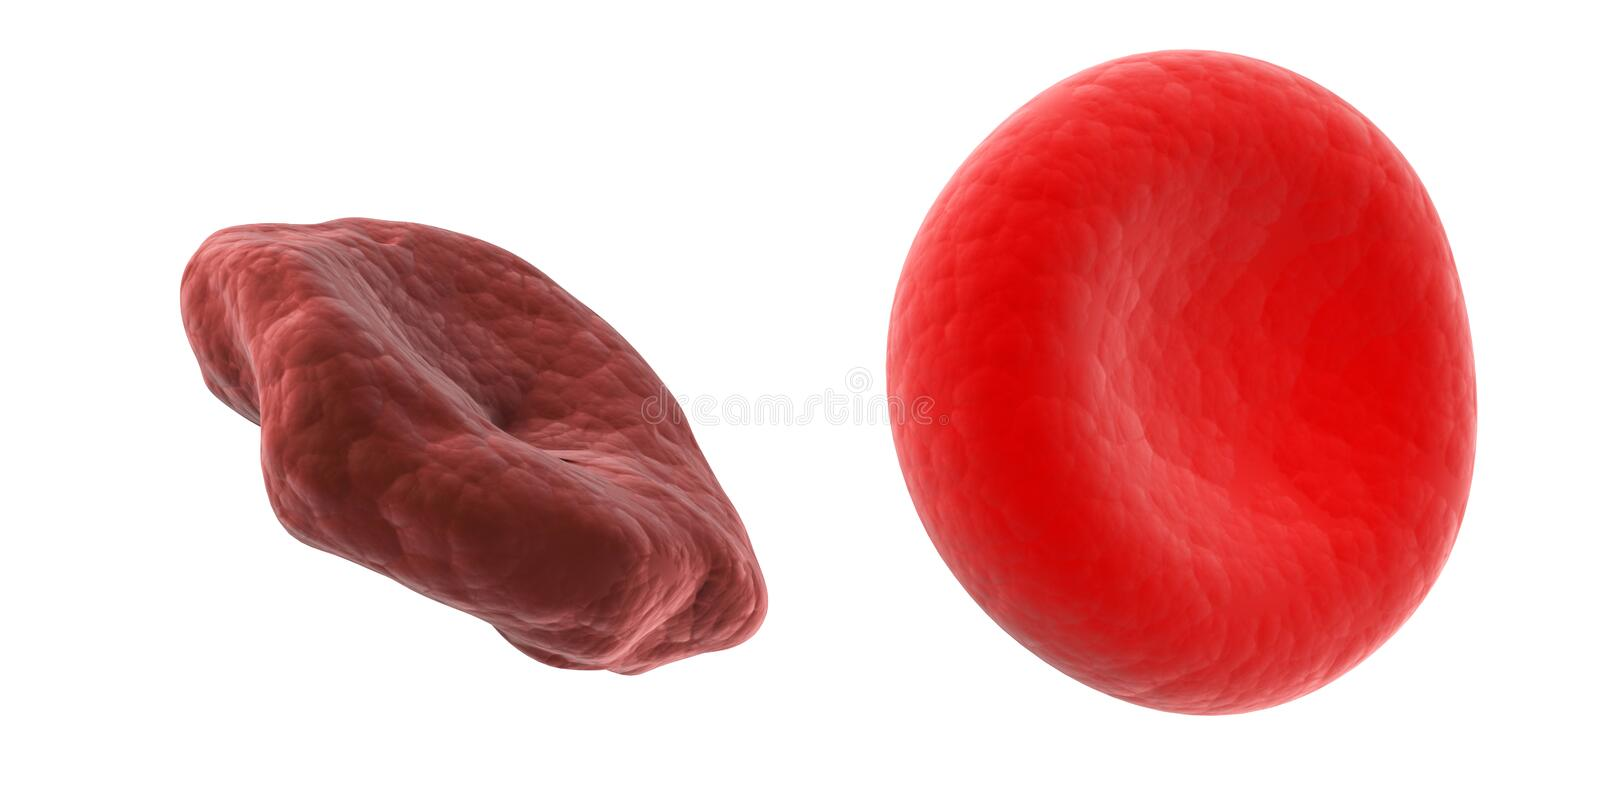 healthy and unhealthy blood cell vector illustration